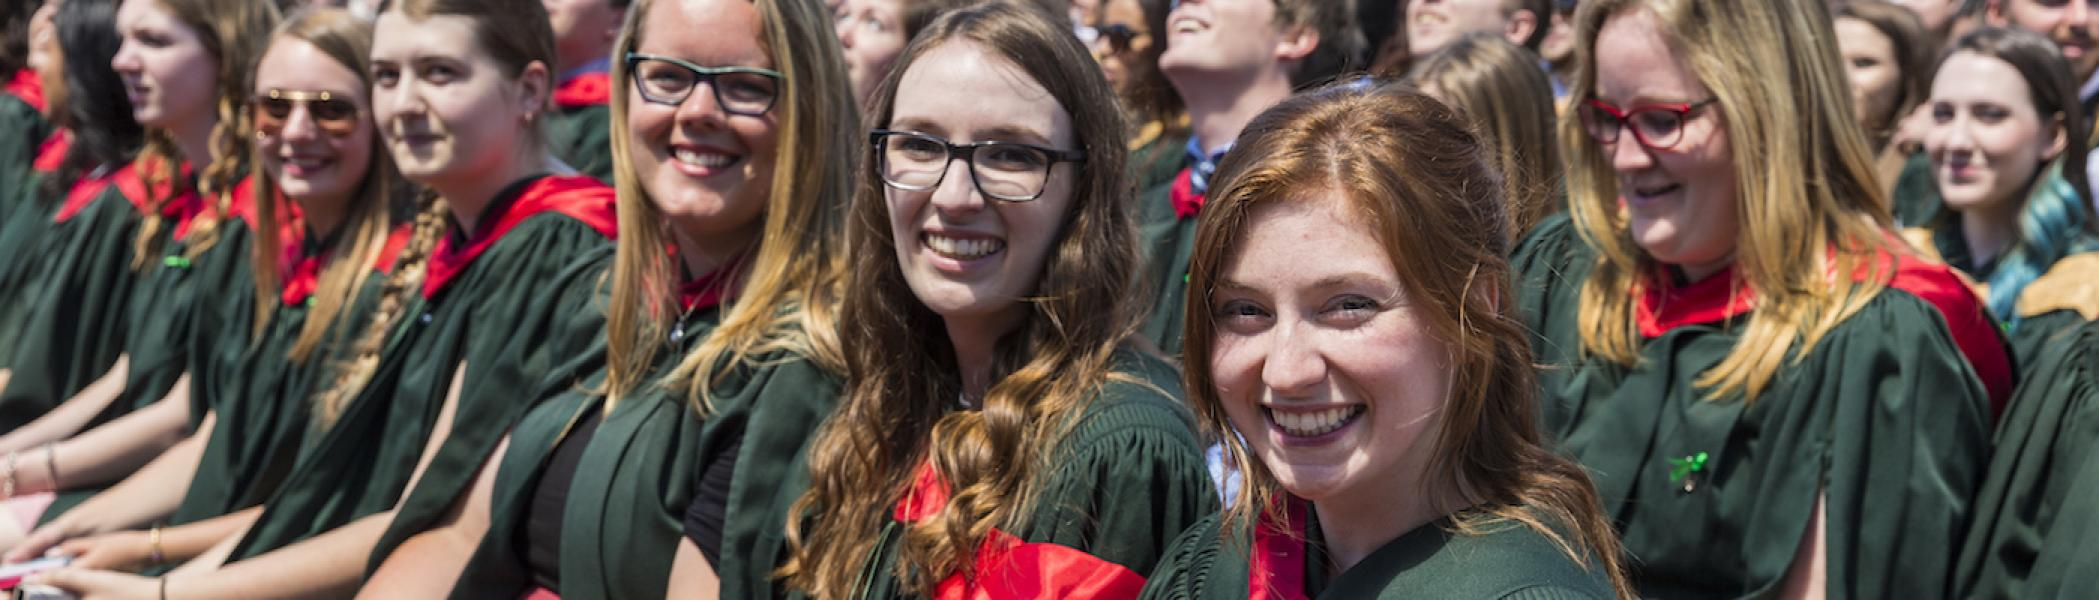 A group of girls smiling at their convocation